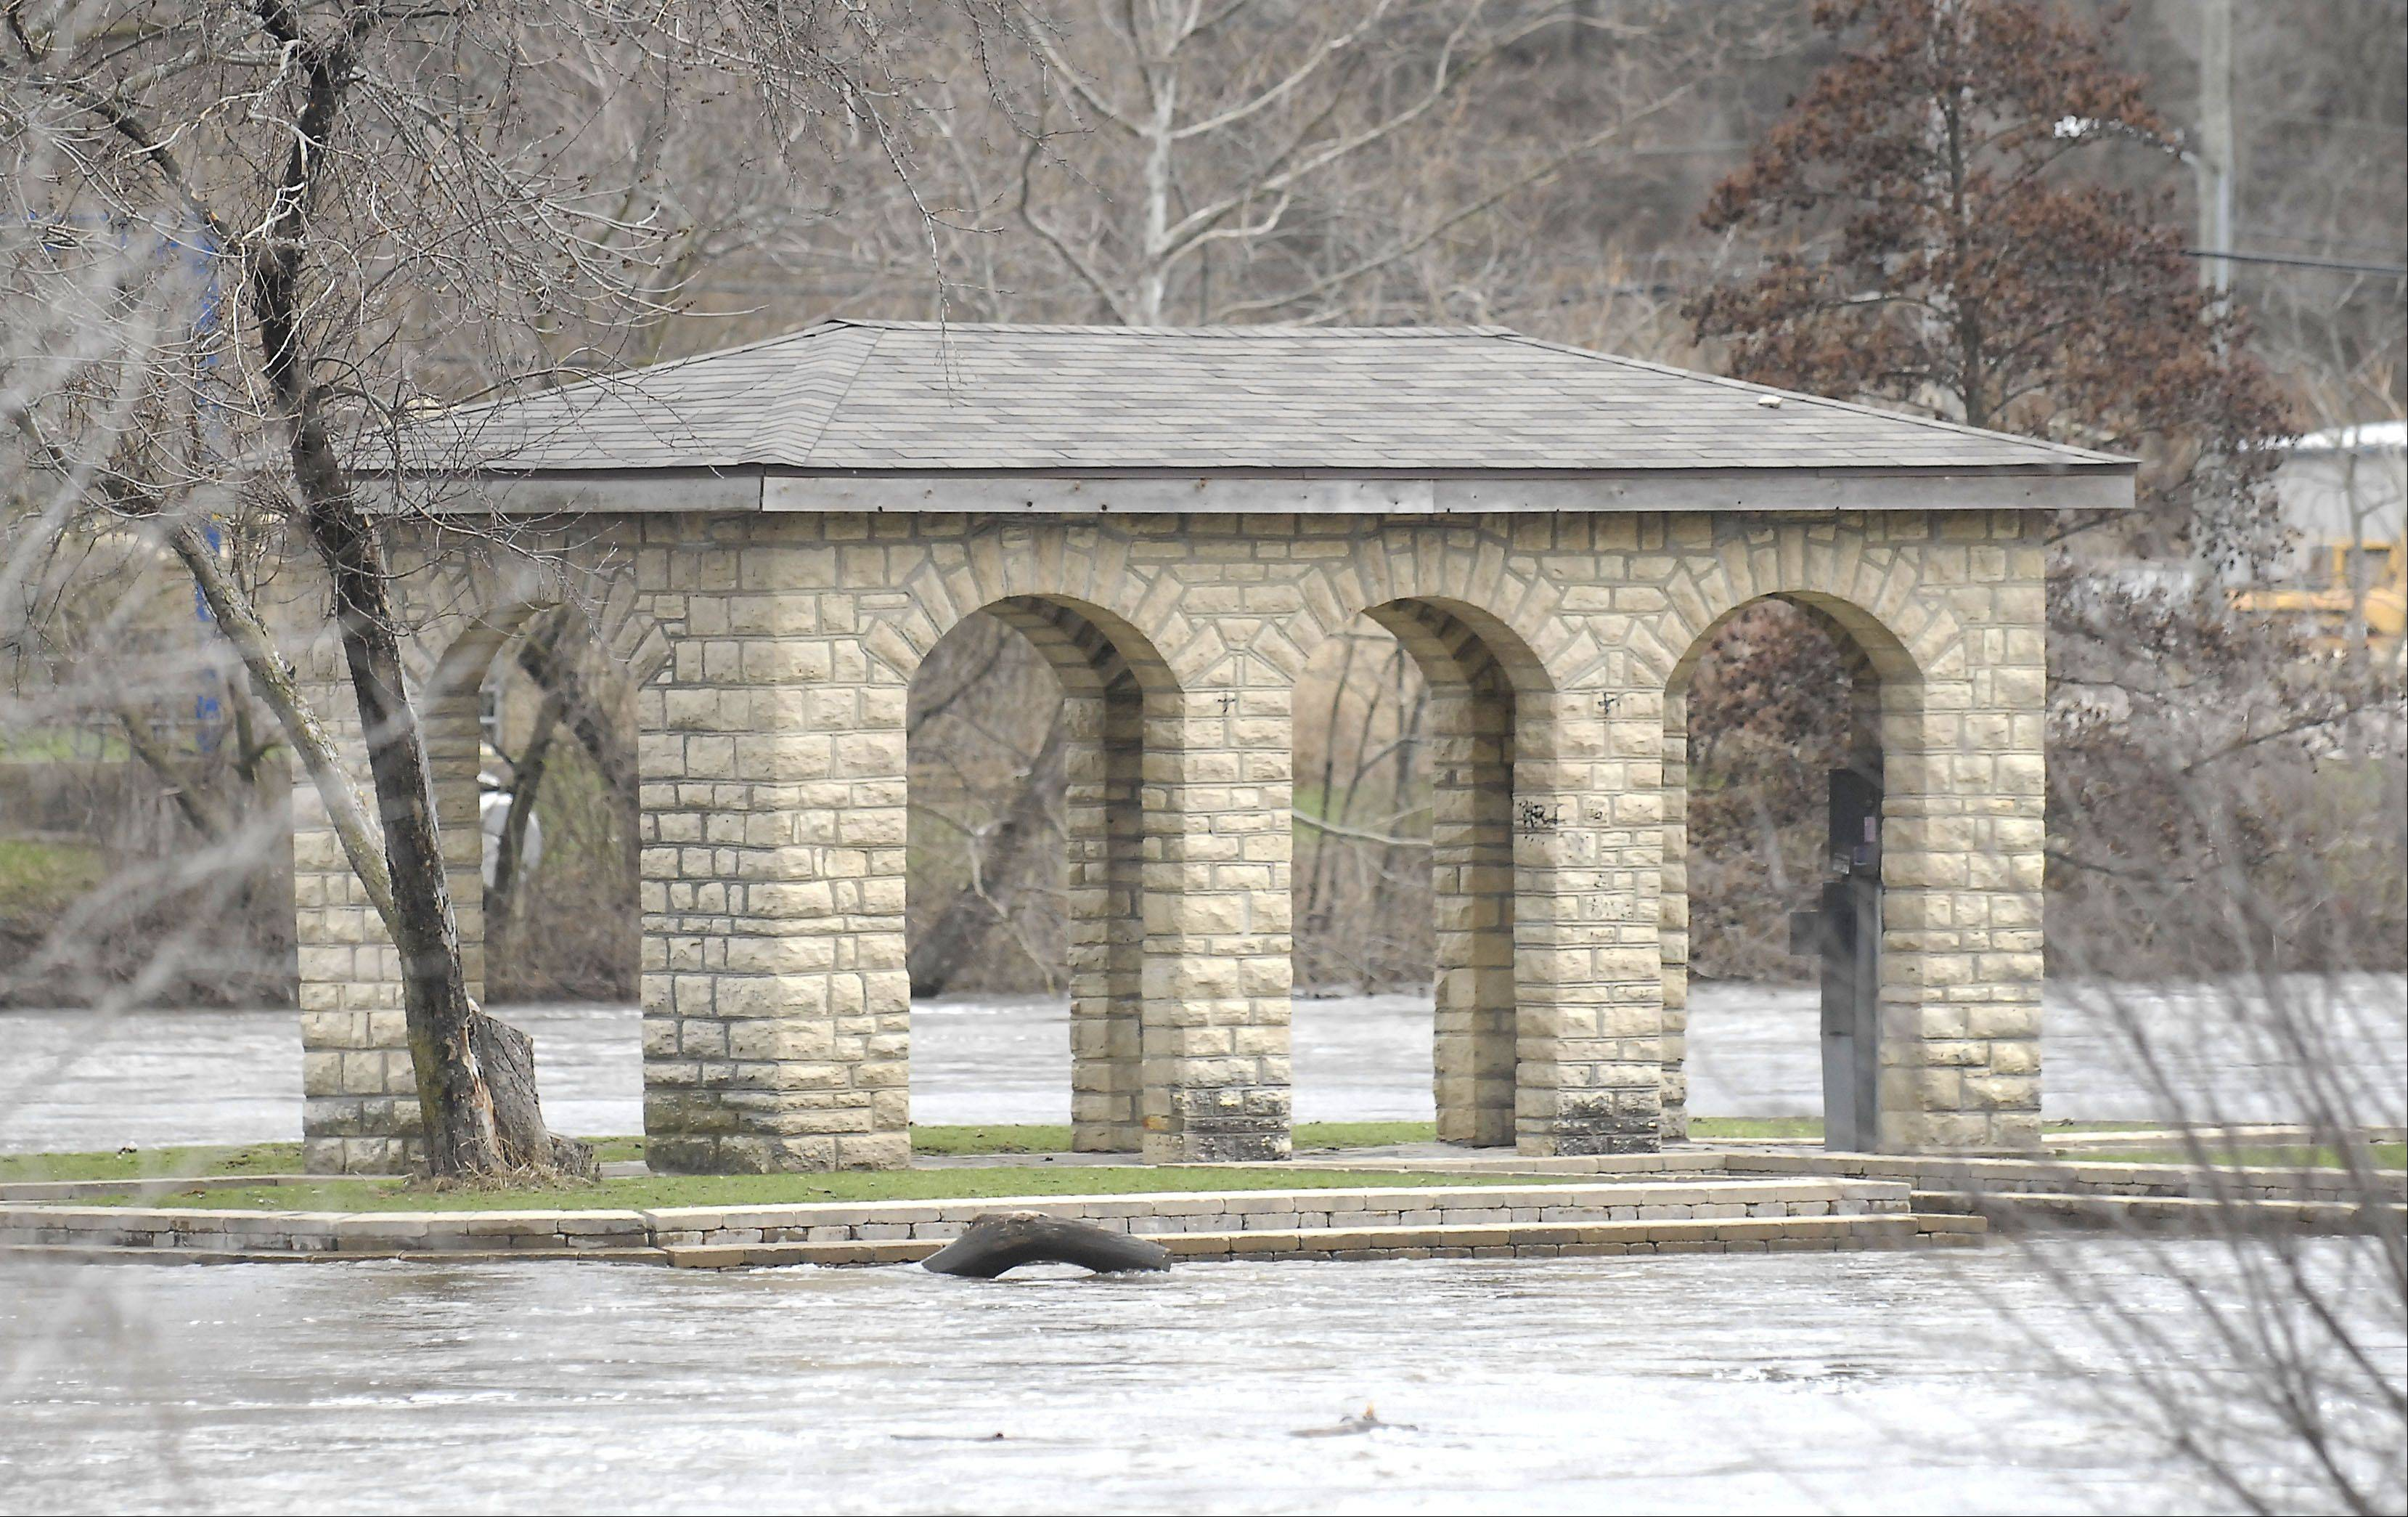 The shelter building on Clark Island Park is surrounded by Fox River floodwaters in Batavia Friday.